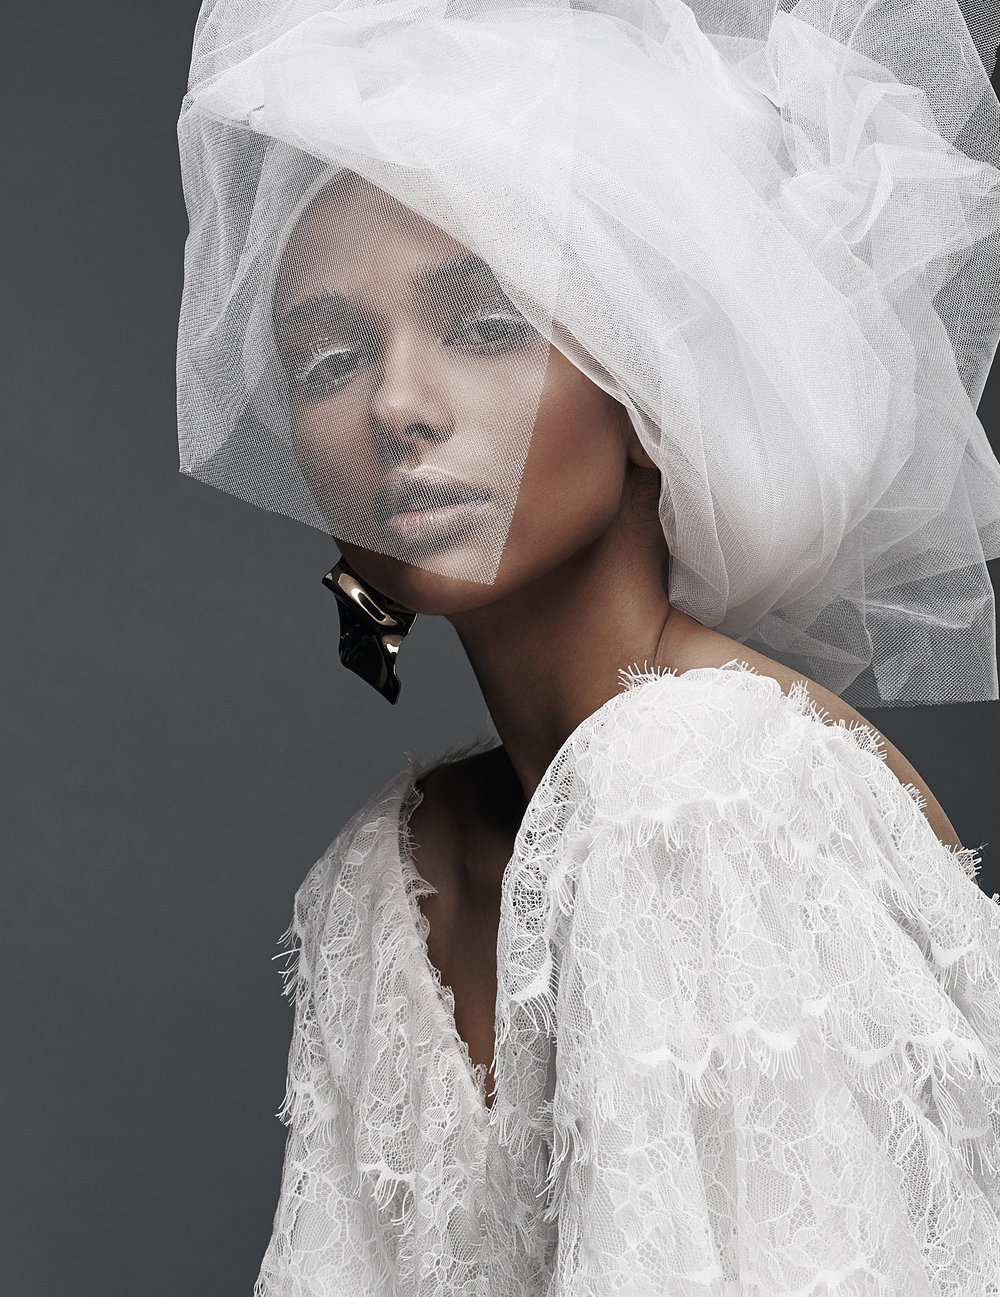 Studio portrait of woman with white make up, in white lace dress with white veil head tie and big earring.